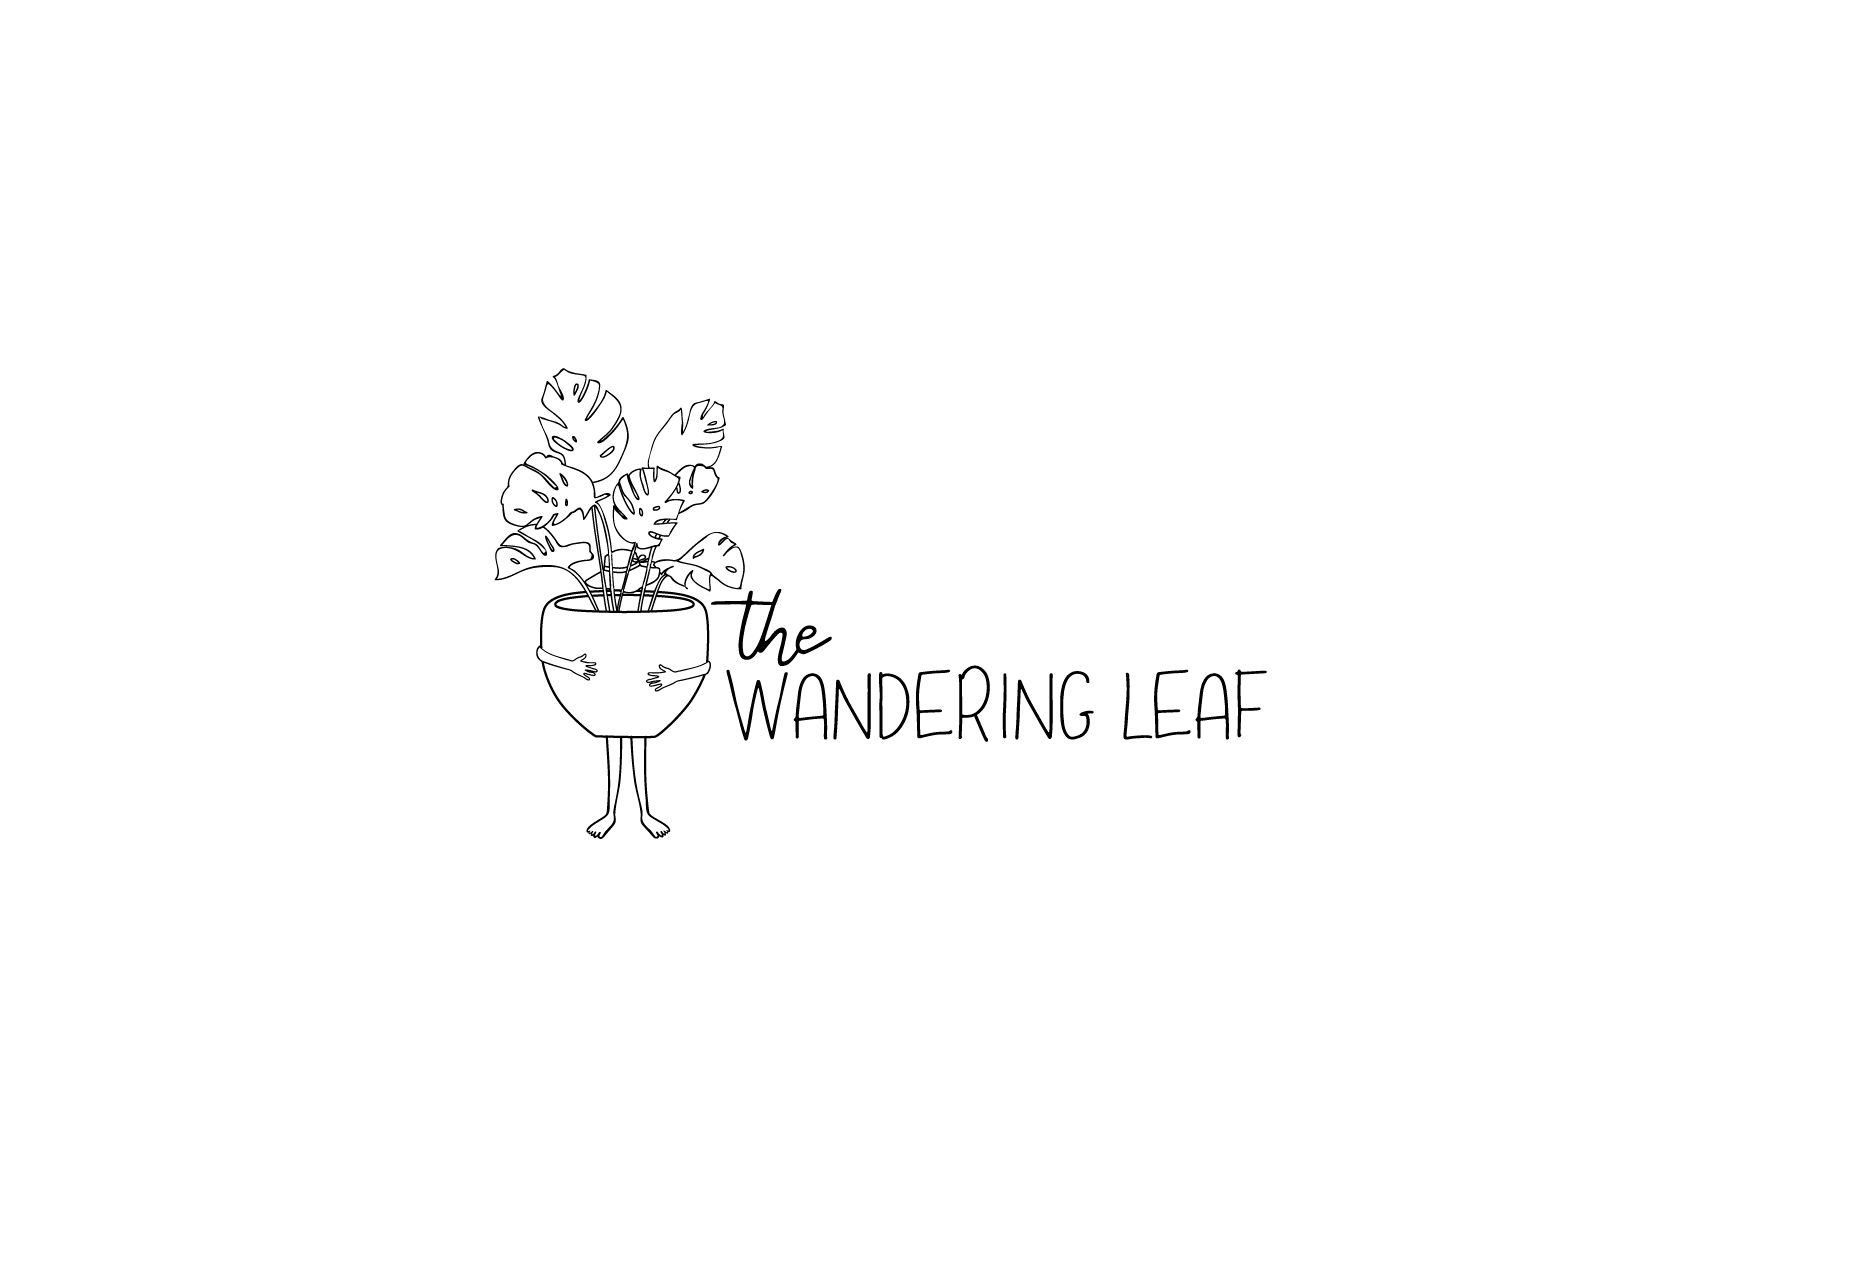 The Wandering Leaf